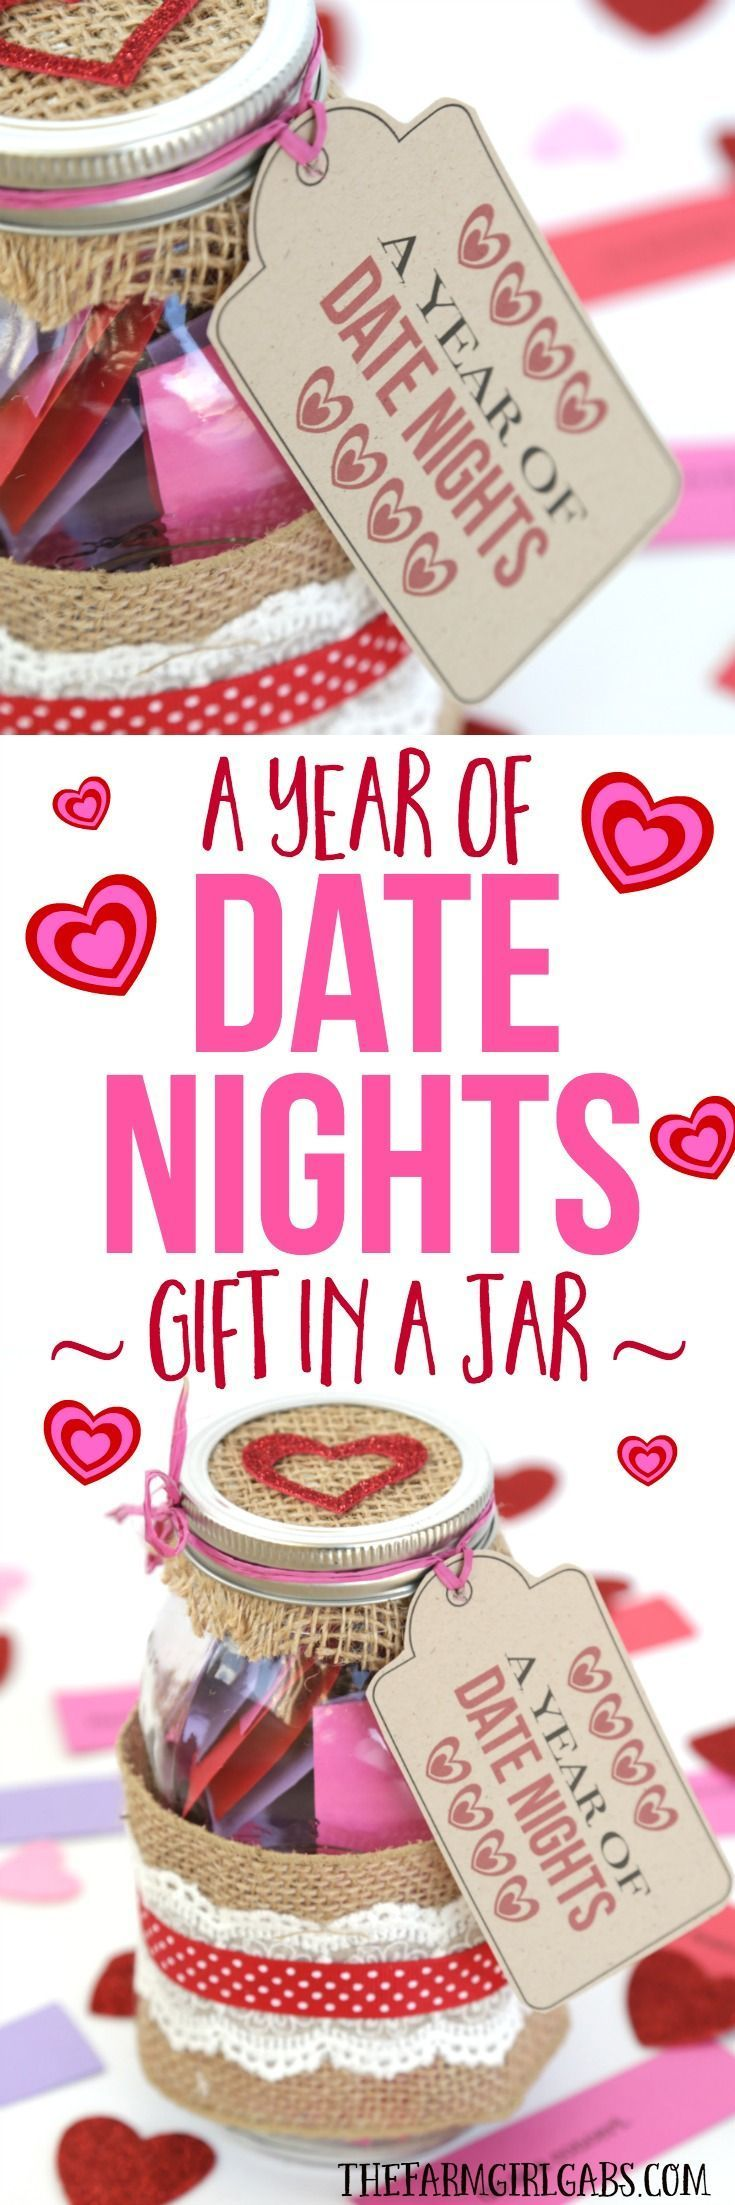 149 Best Date Ideas Images On Pinterest | Date Ideas, Romantic Ideas And  Creative